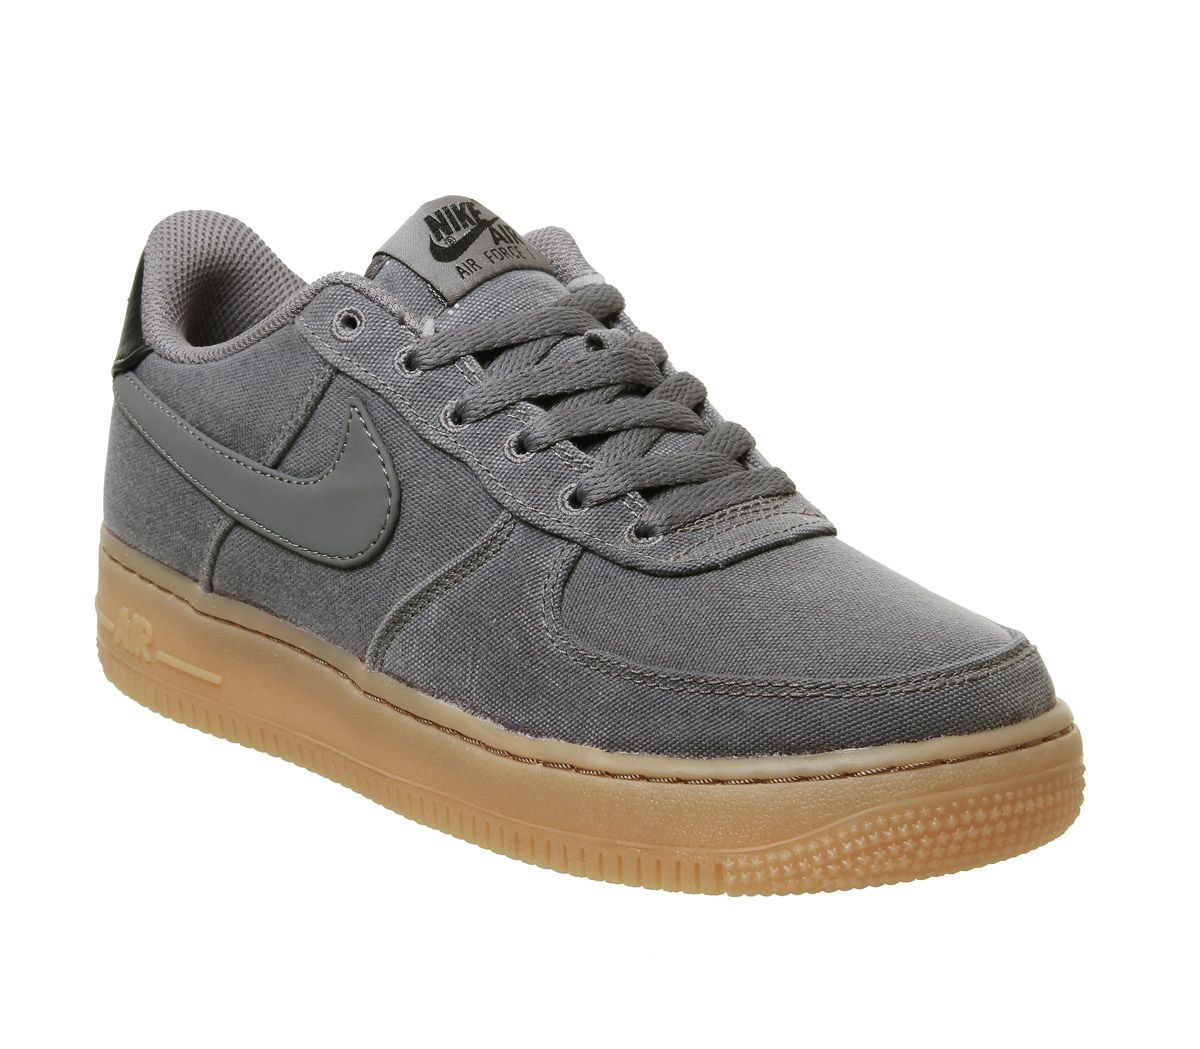 aac25bd5284 Nike Air Force 1 Lv8 Gs Trainers Flat Pewter Gum Med Brown - Hers ...